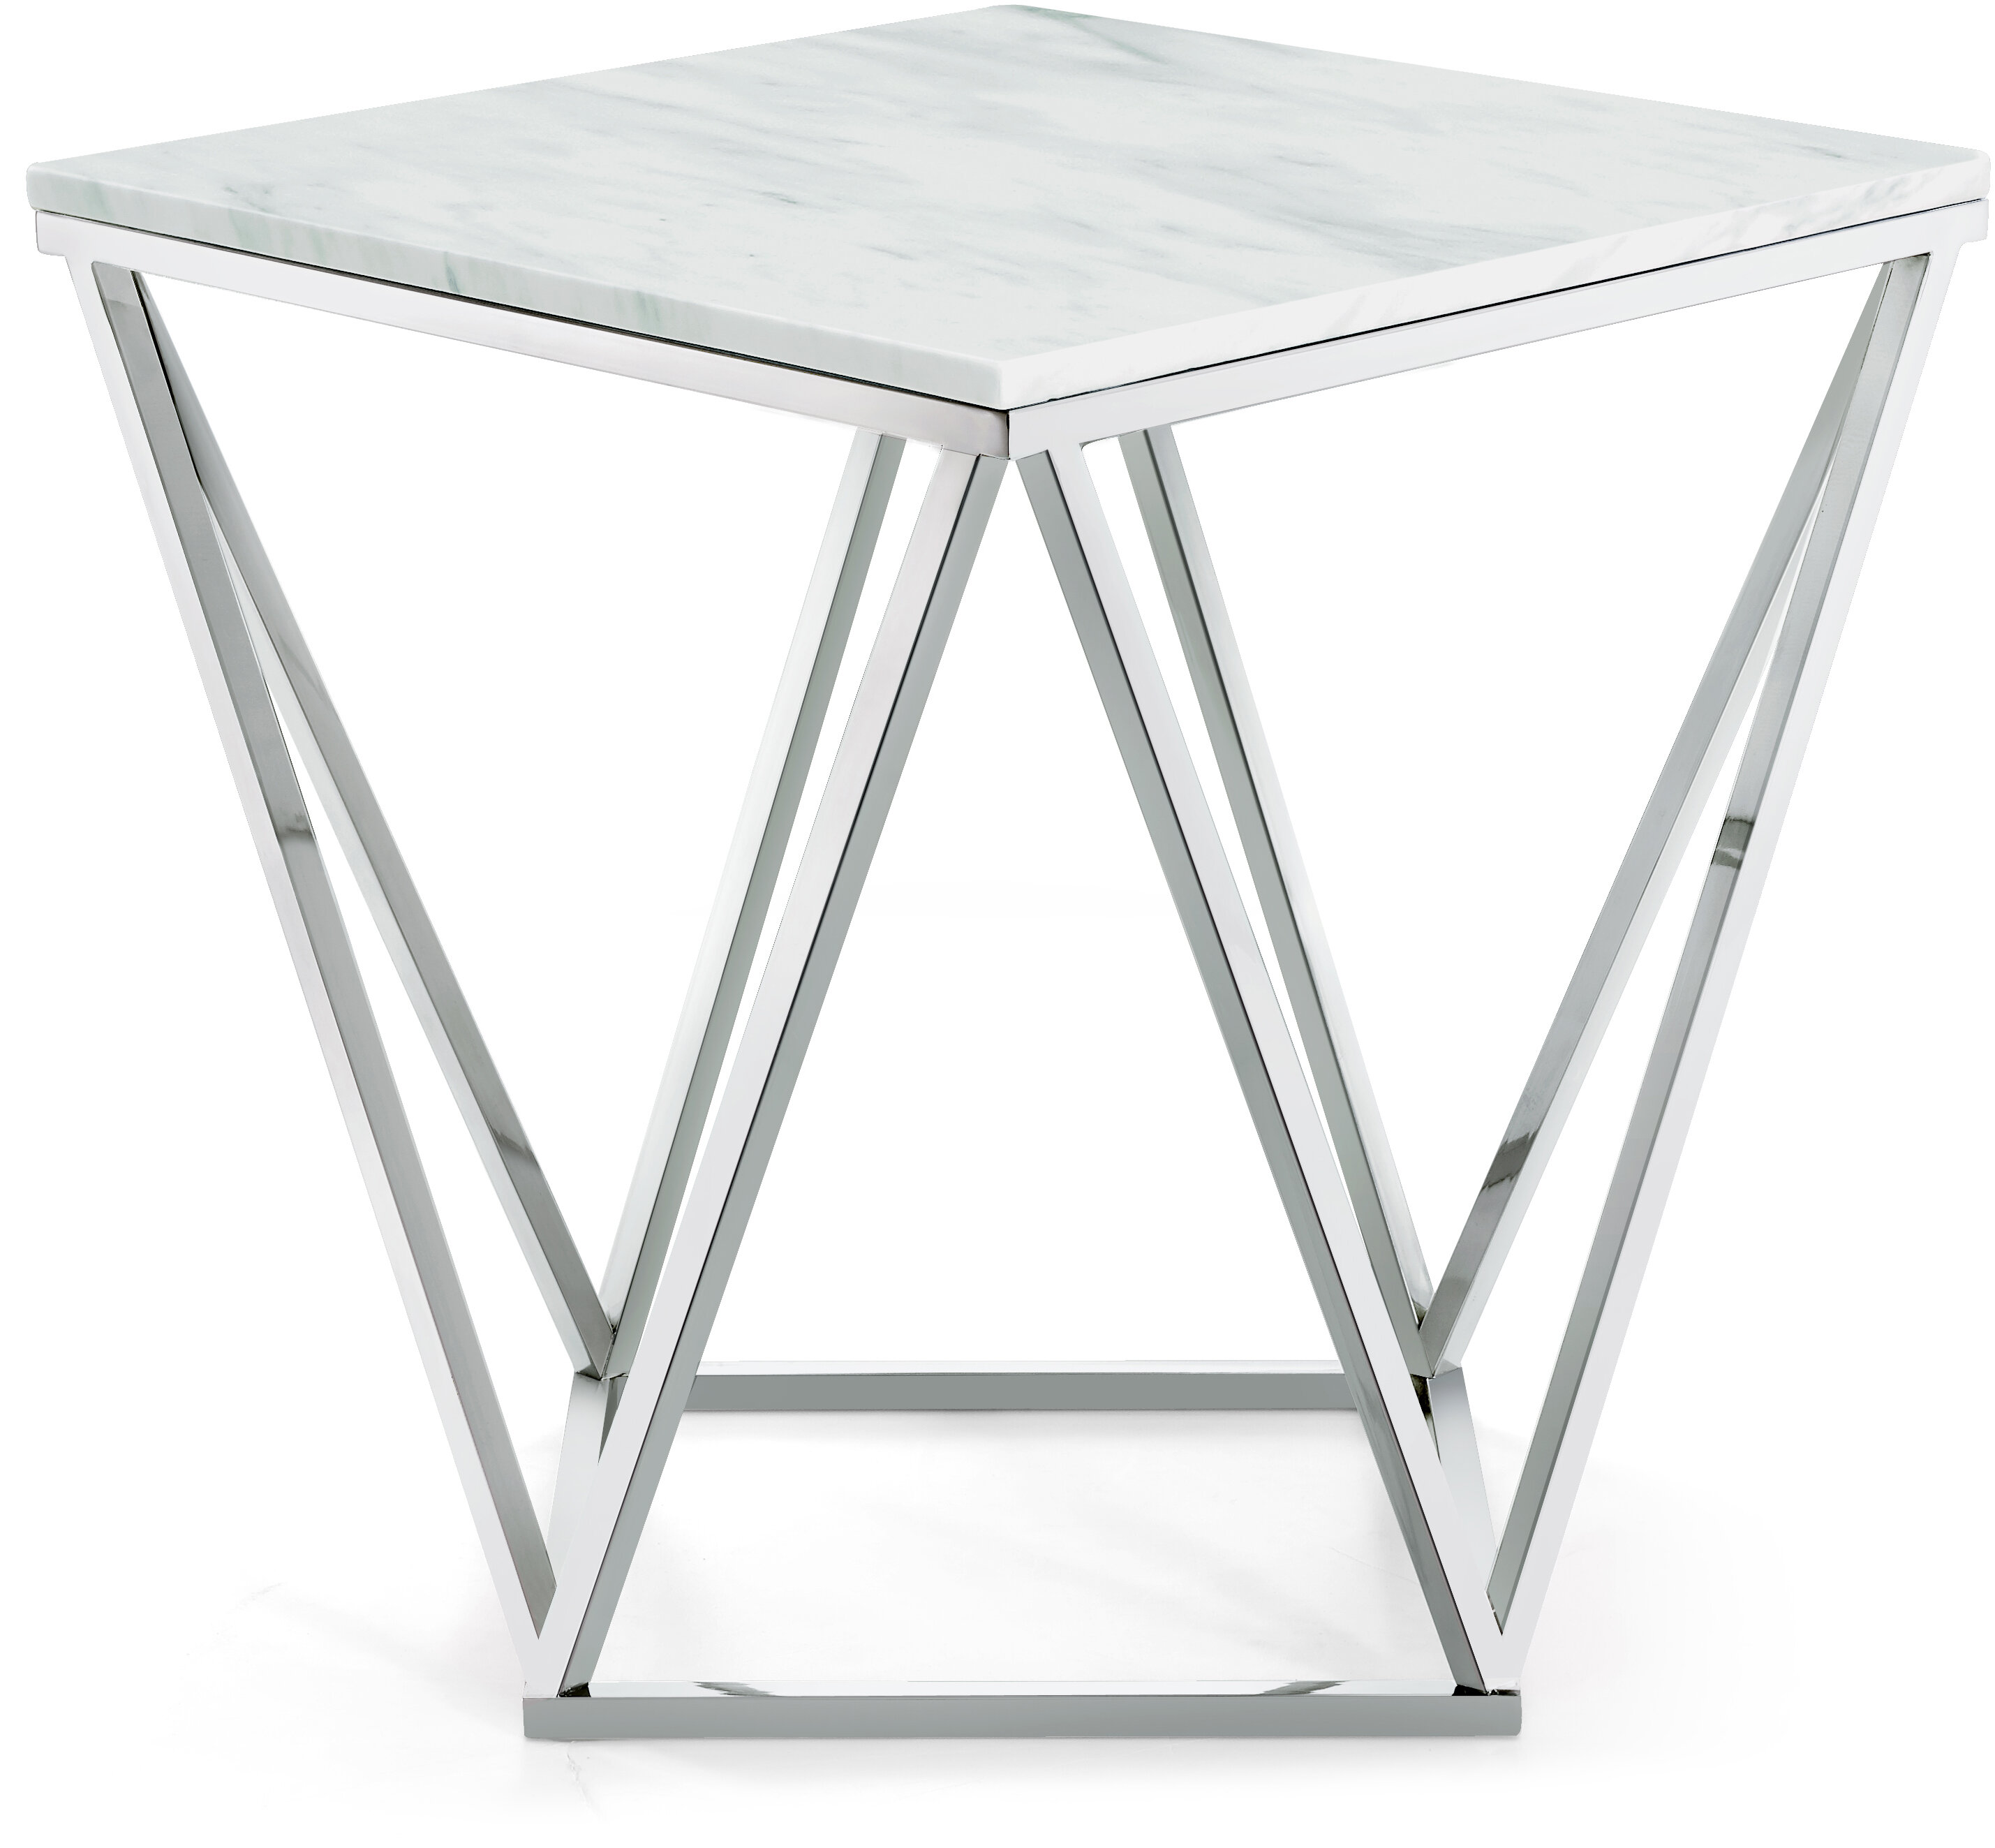 Robeson marble end table reviews allmodern